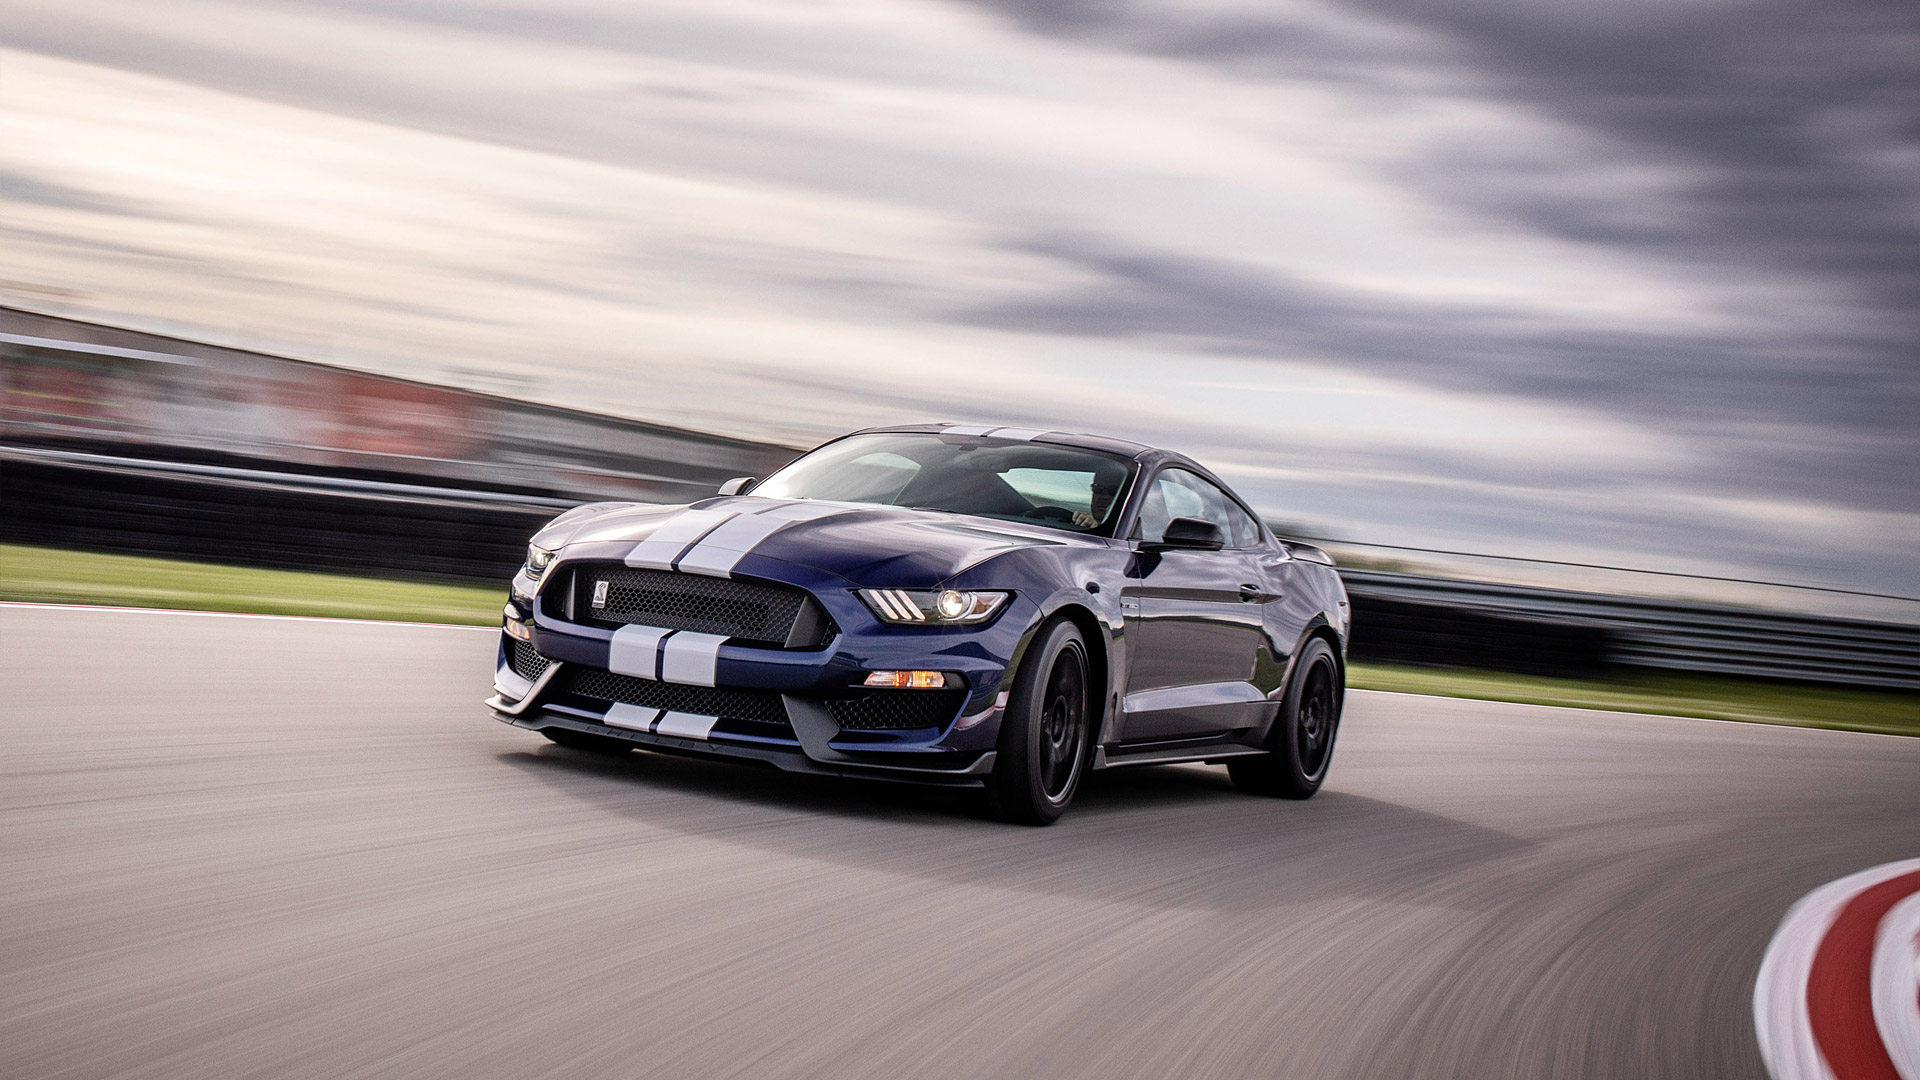 1920x1080 - Shelby Mustang GT 350 Wallpapers 25